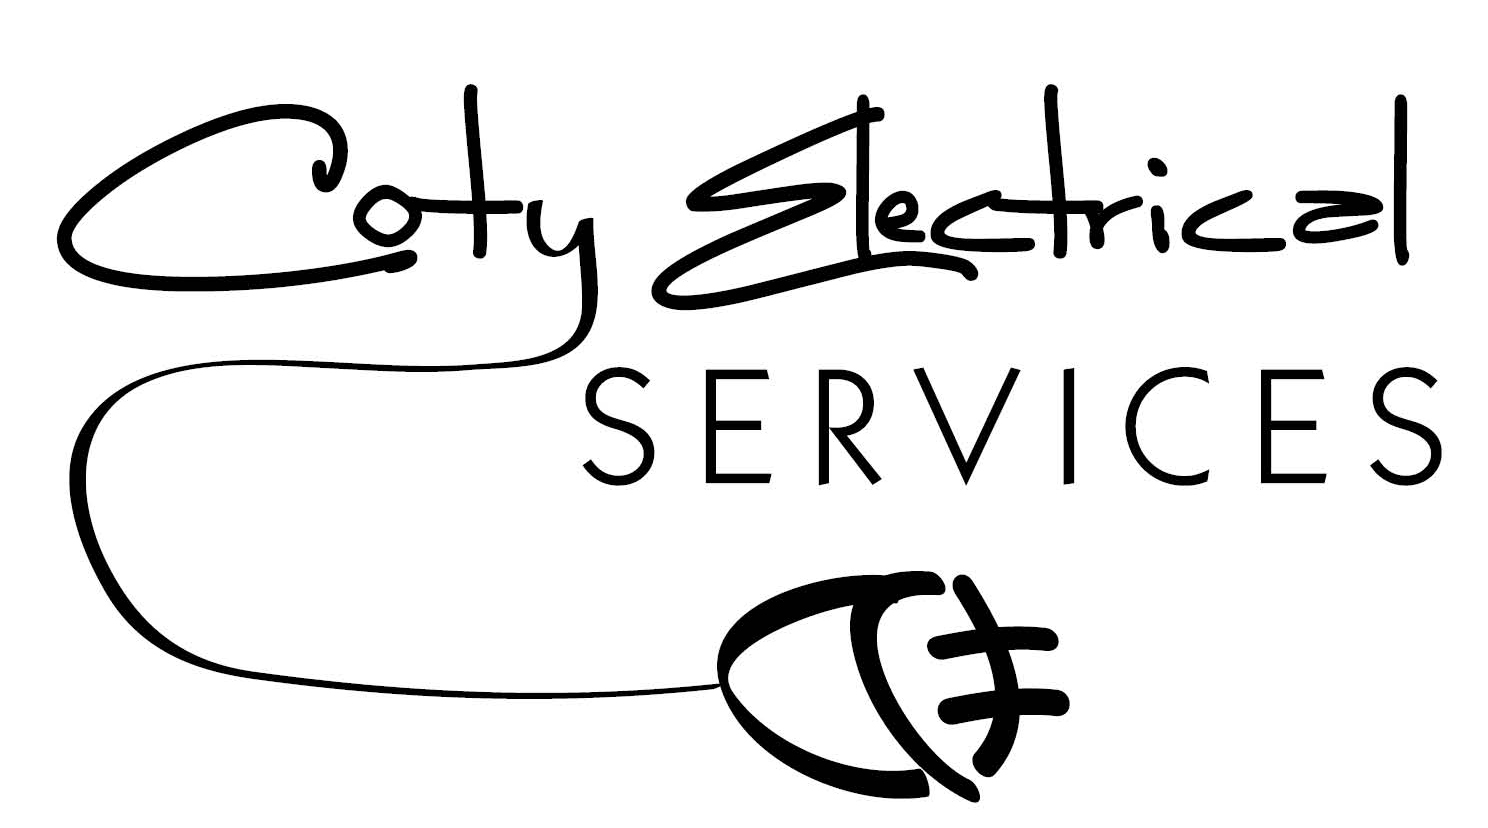 Coty Electrical Services